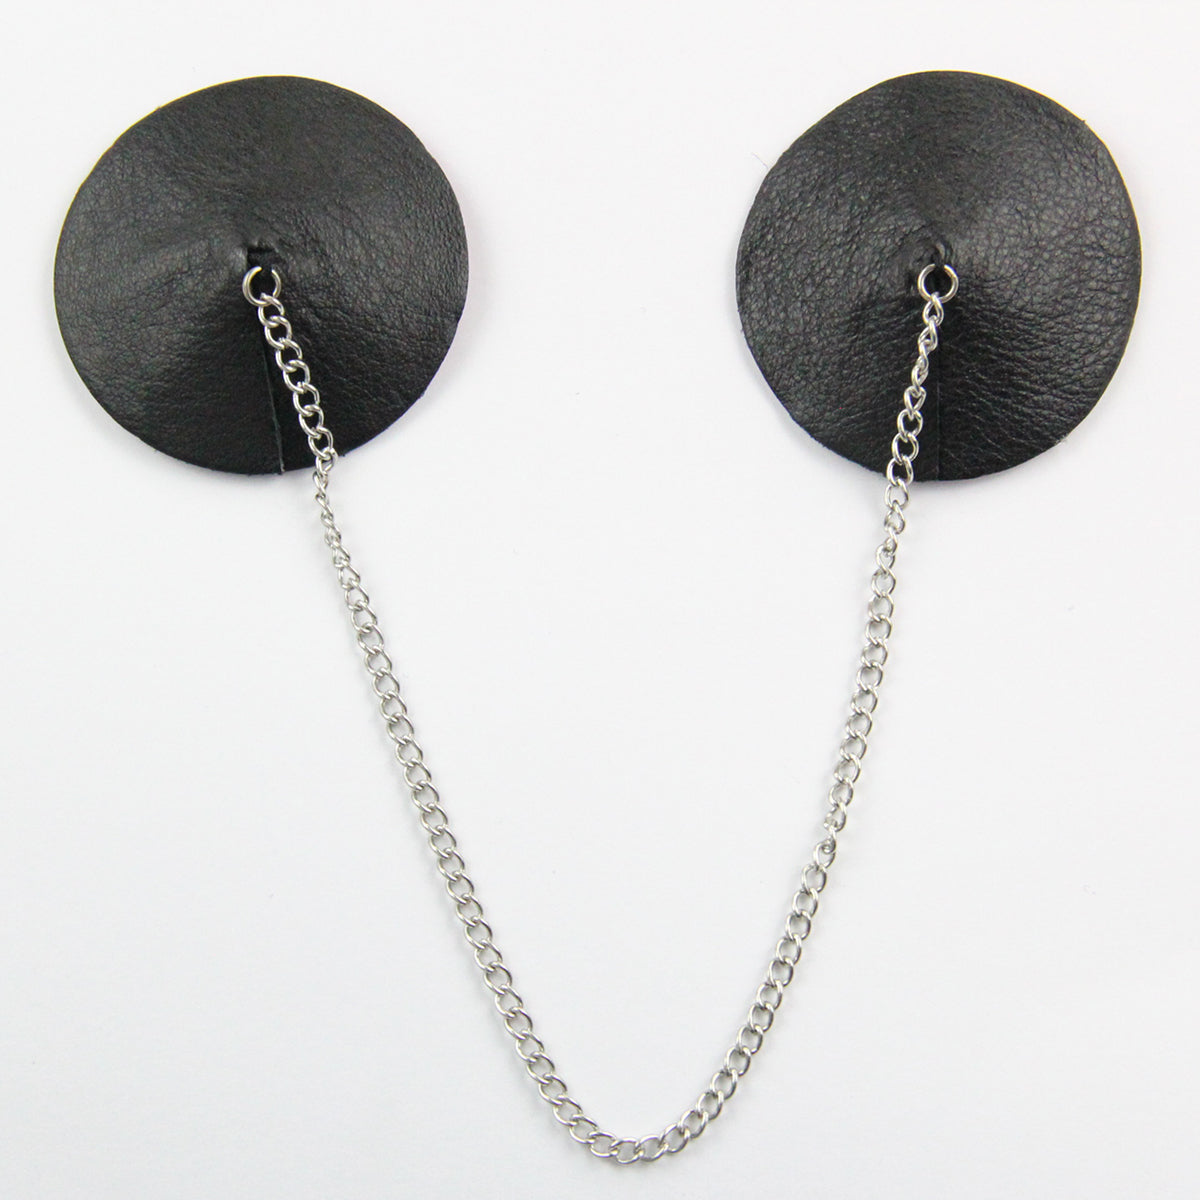 Round Leather Nipple Pasties with Silver Chain